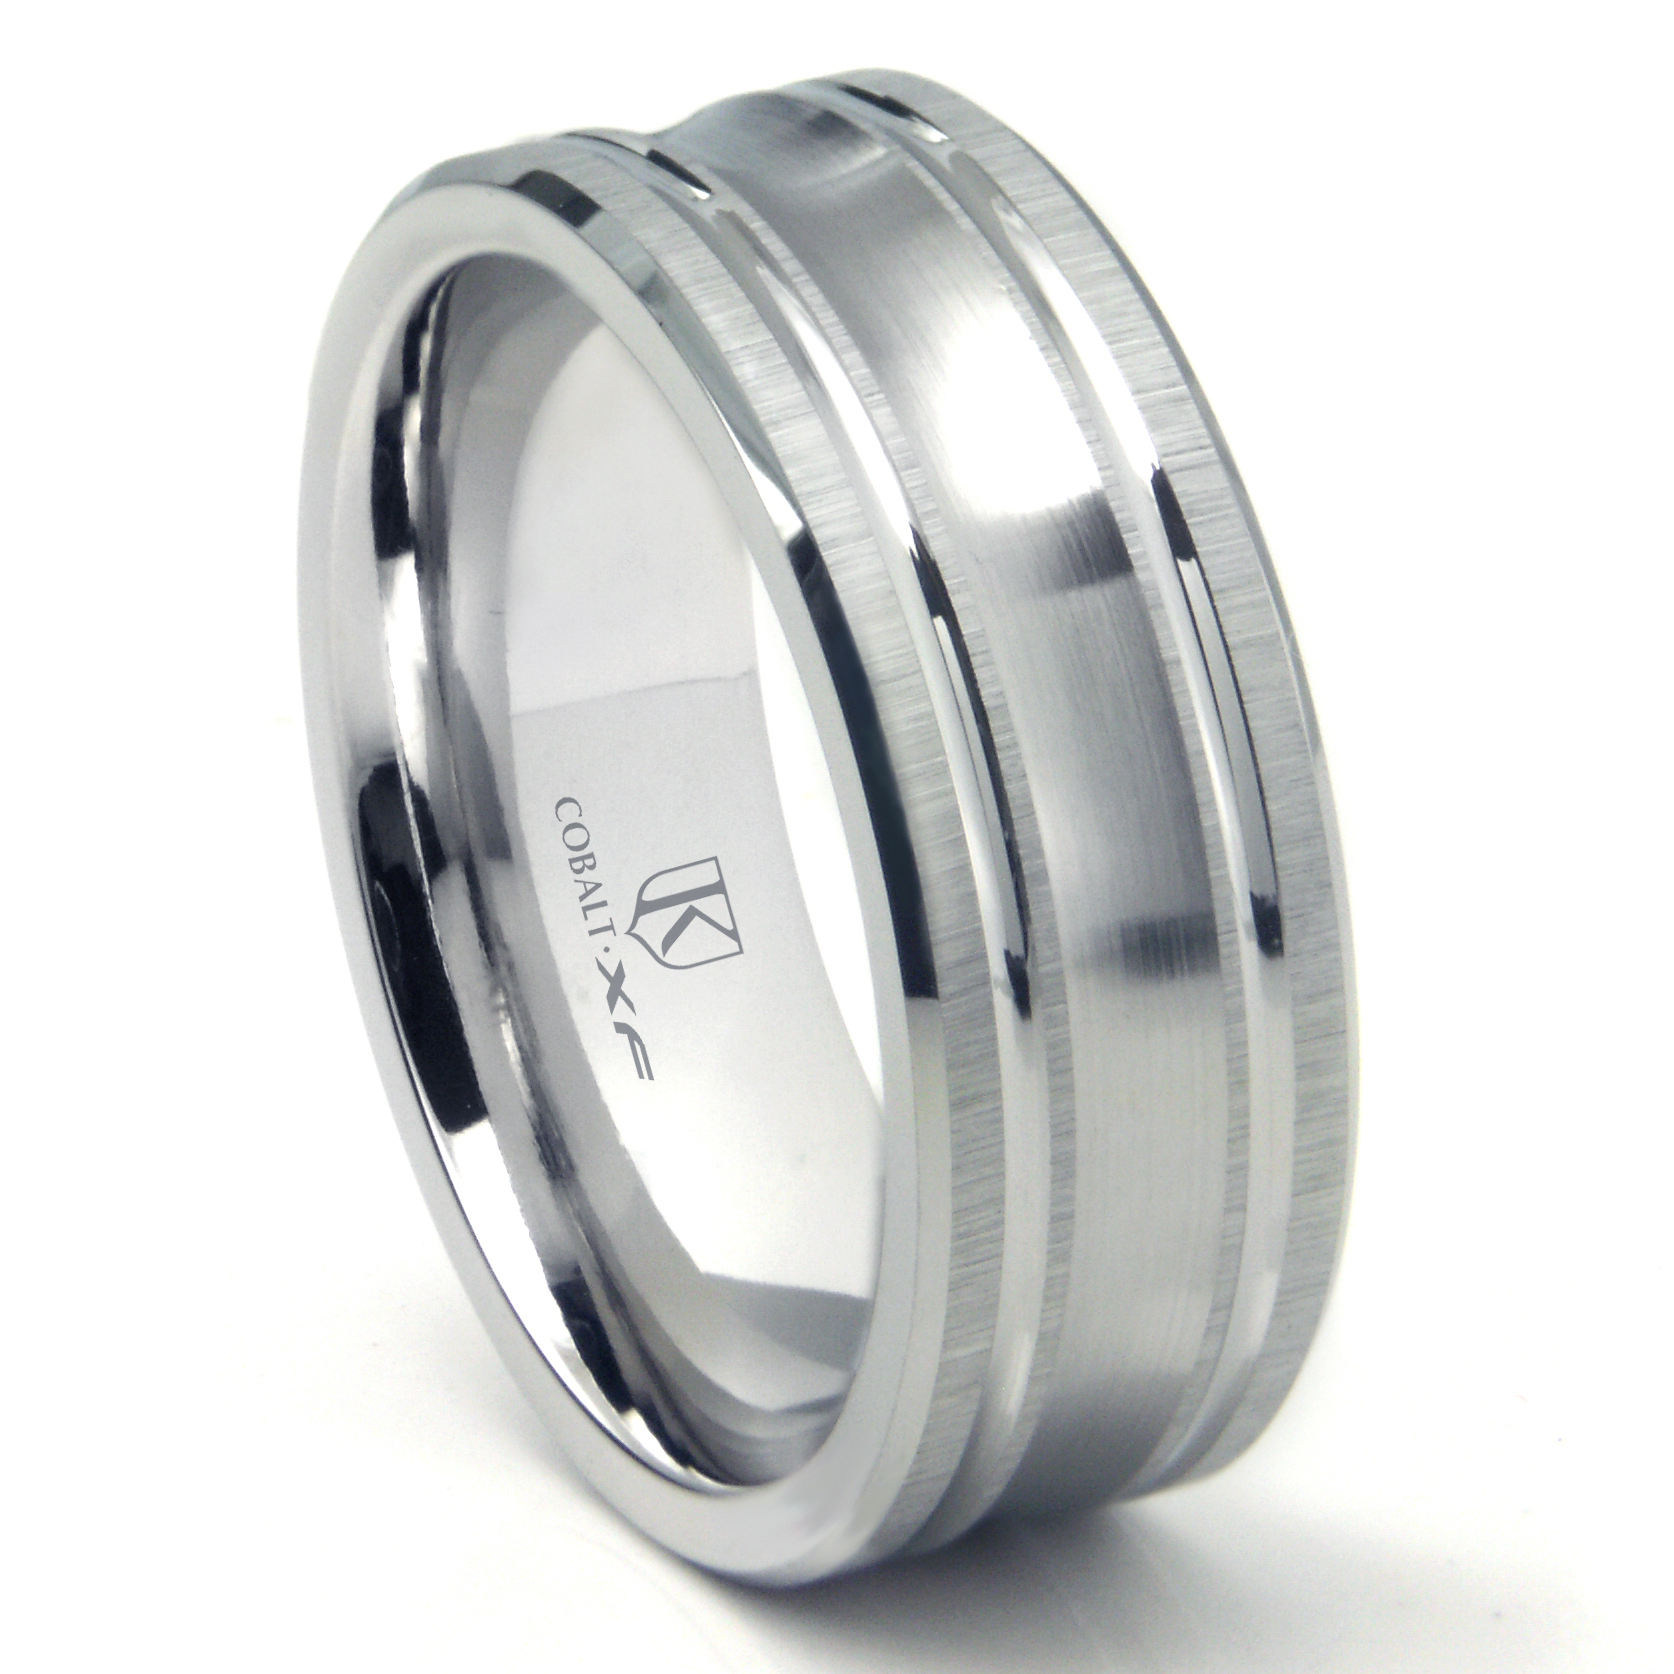 Cobalt XF Chrome 9MM Concave Wedding Band Ring w Coinedge Satin Finish P cobalt wedding bands Home Cobalt Rings Loading zoom